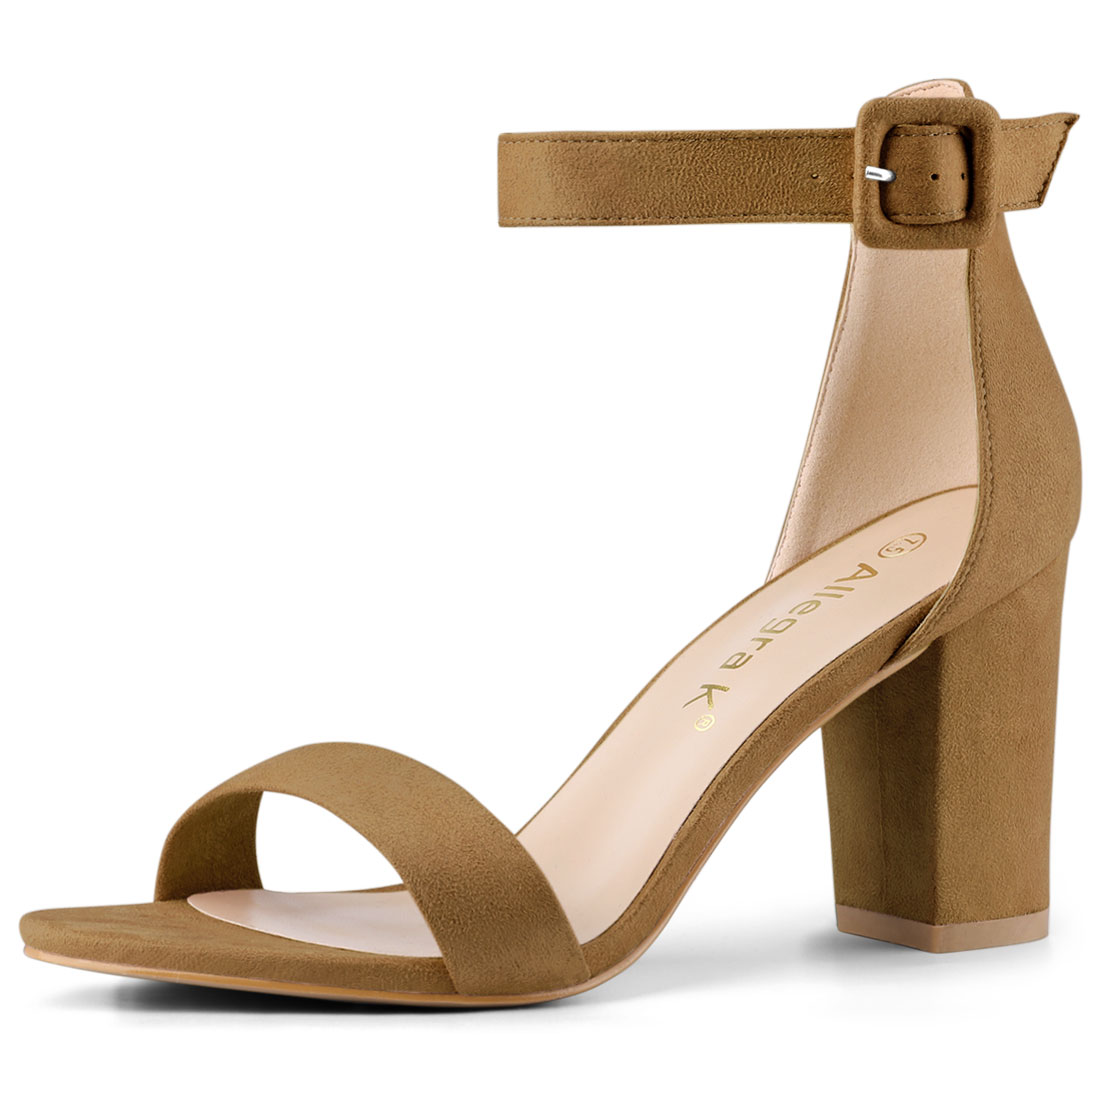 Woman Open Toe Chunky High Heel Ankle Strap Sandals Camel US 7.5